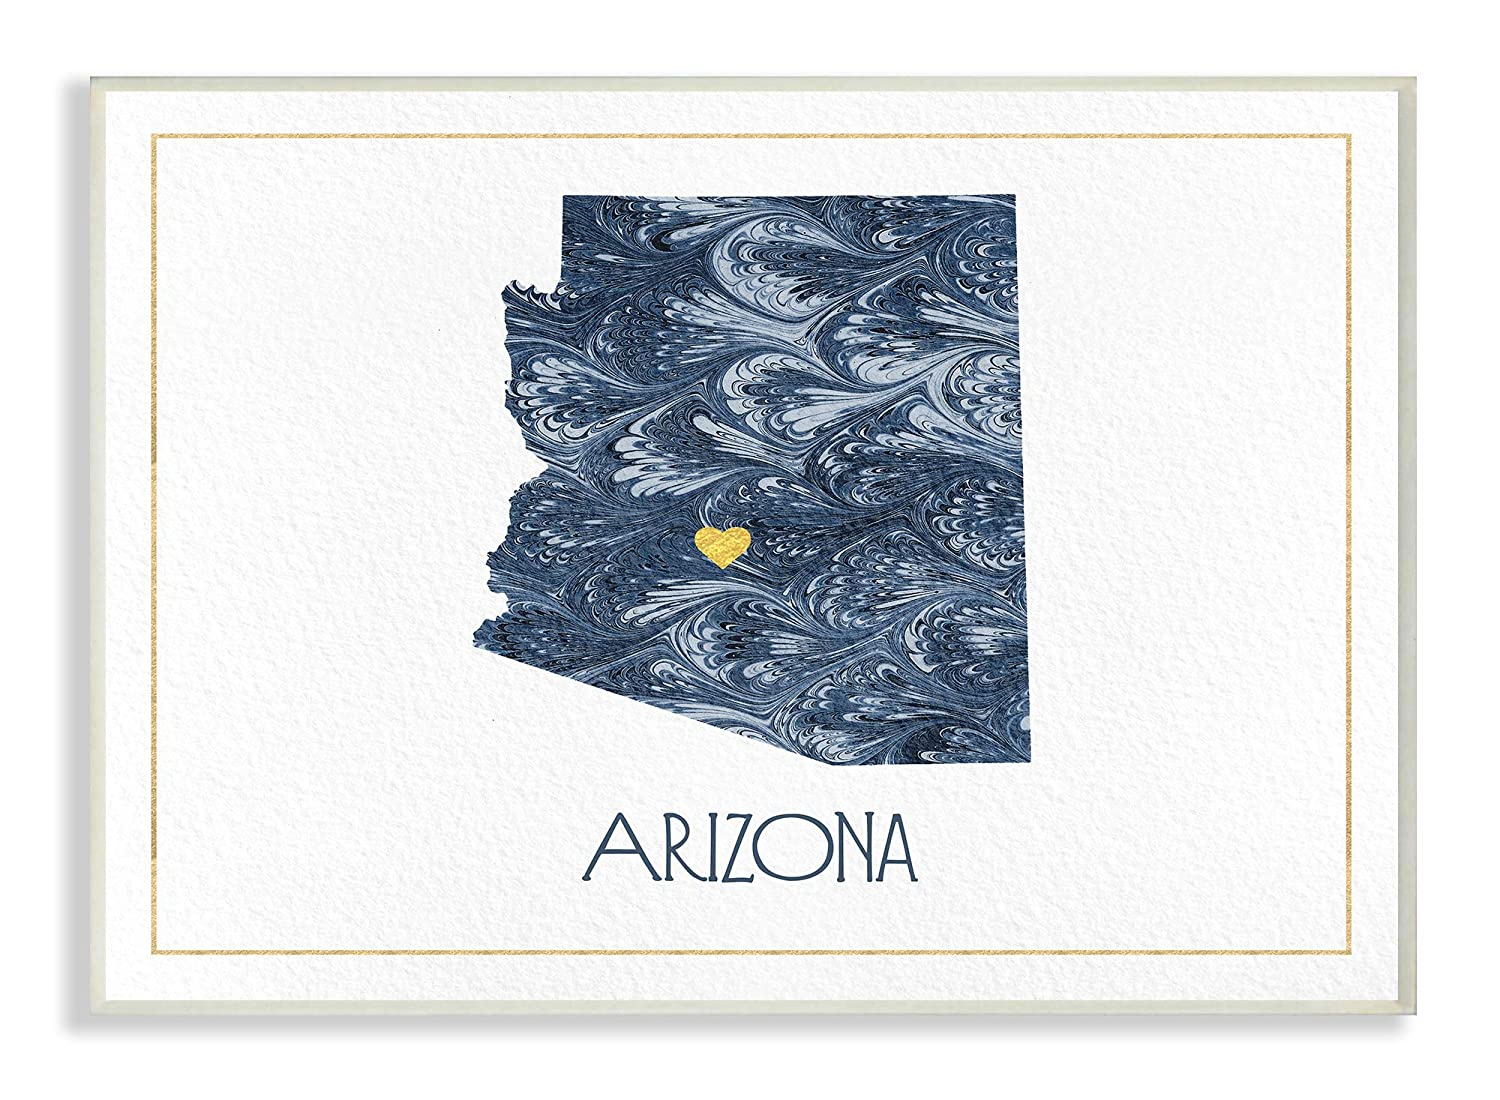 10 x 15 The Stupell Home Decor Arizona Minimal Blue Marbled Paper Silhouette Wall Plaque Art Multi-Color